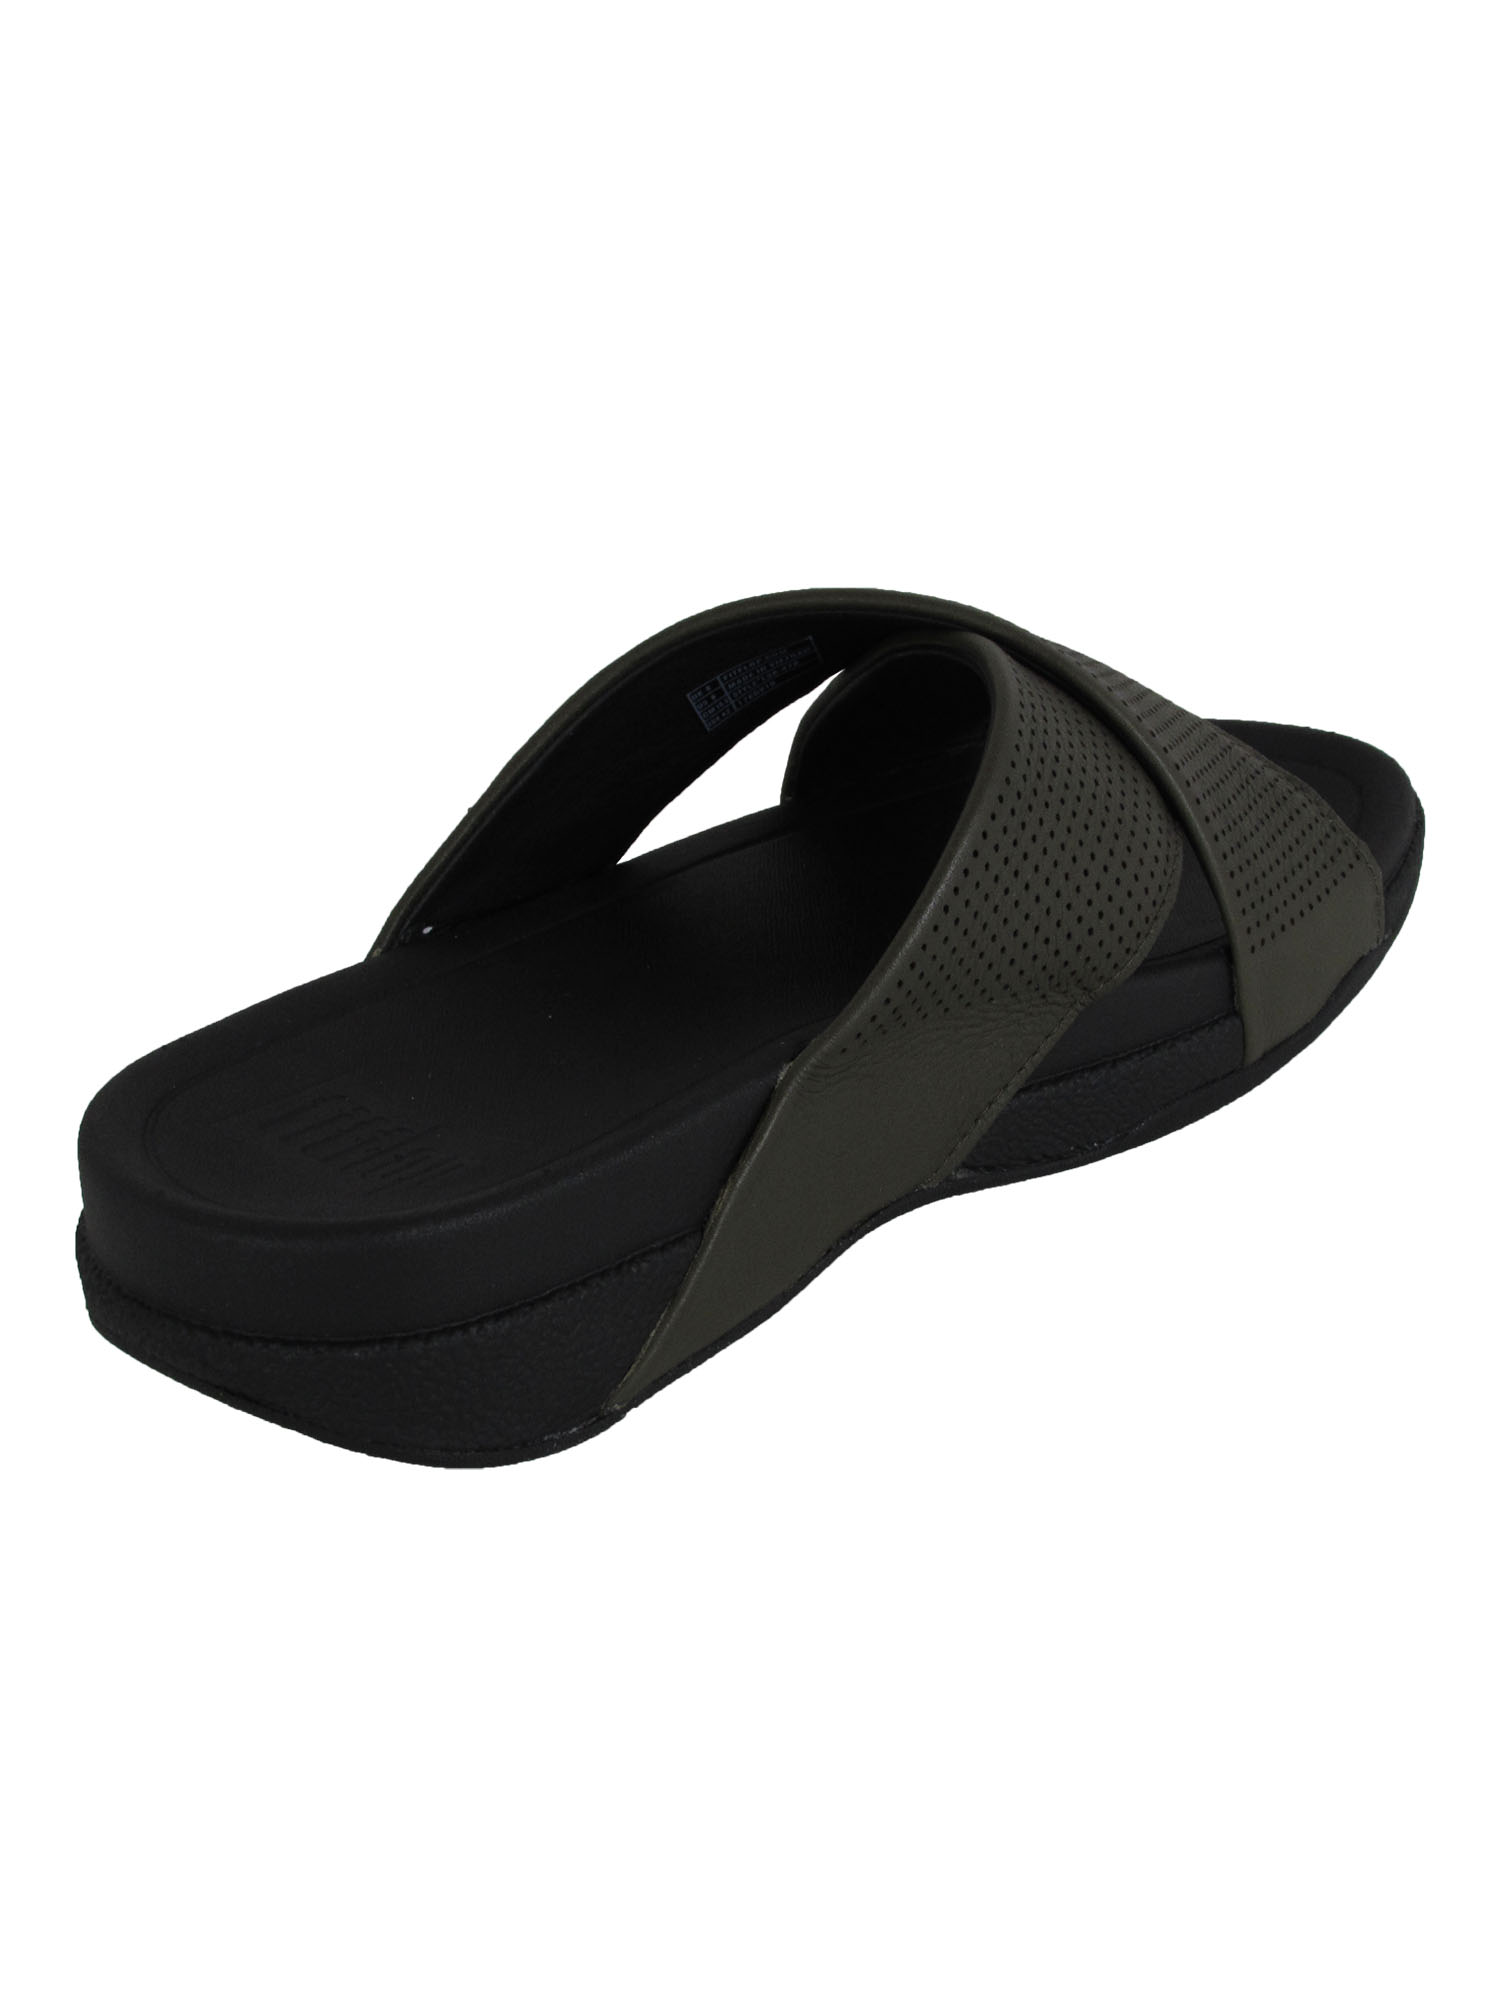 thumbnail 7 - Fitflop-Mens-Surfer-Perforated-Leather-Slide-Shoes